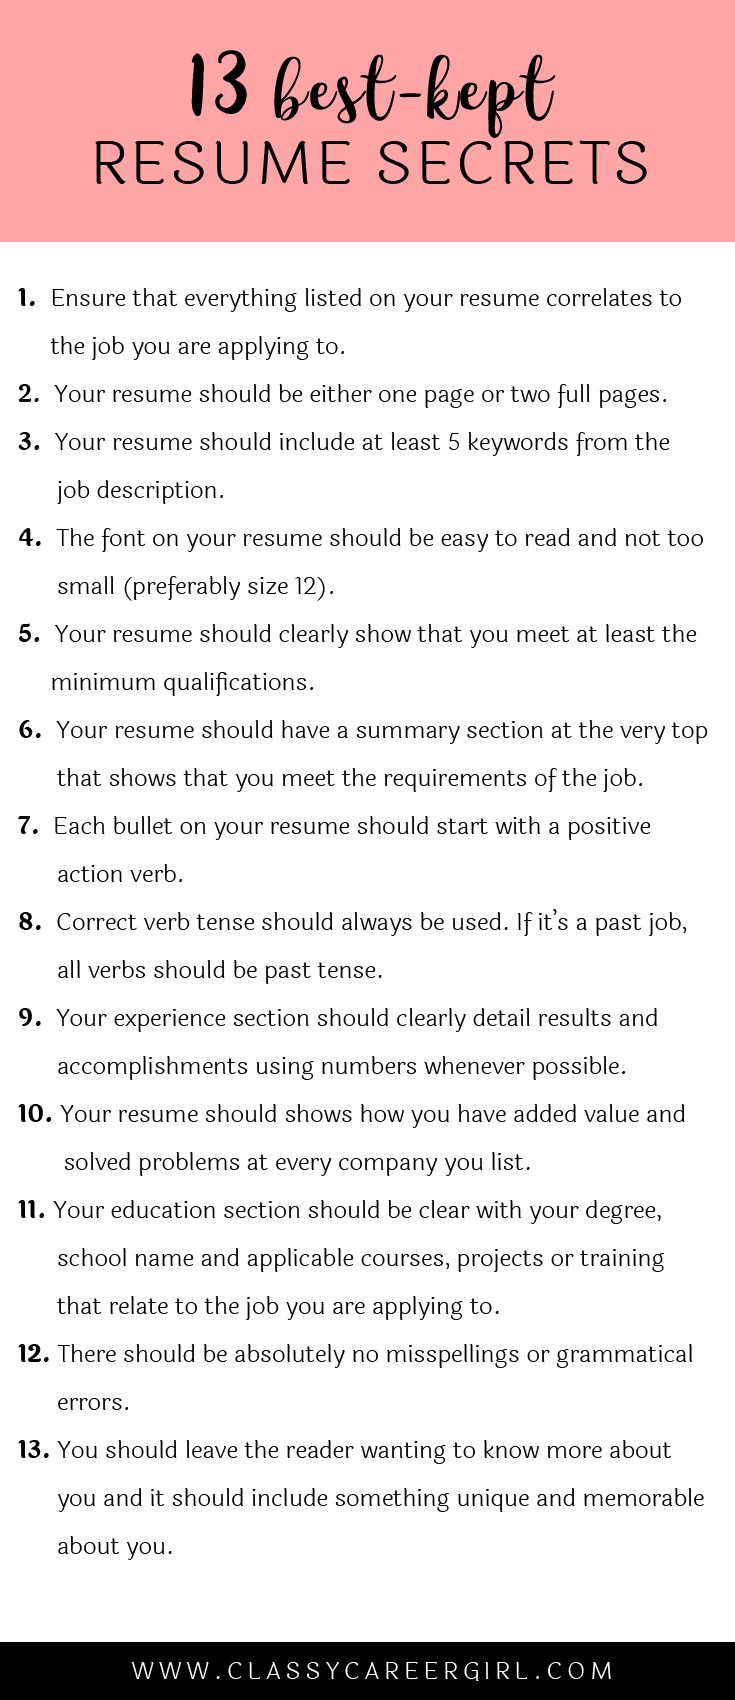 Opposenewapstandardsus  Inspiring  Ideas About Resume On Pinterest  Cv Format Resume Cv And  With Fair Some Hiring Managers Will Toss Your Resume Out If You Dont Know These  With Lovely Resumes For Medical Assistant Also President Resume In Addition Mini Resume And It Intern Resume As Well As Proffessional Resume Additionally Proper Font Size For Resume From Pinterestcom With Opposenewapstandardsus  Fair  Ideas About Resume On Pinterest  Cv Format Resume Cv And  With Lovely Some Hiring Managers Will Toss Your Resume Out If You Dont Know These  And Inspiring Resumes For Medical Assistant Also President Resume In Addition Mini Resume From Pinterestcom